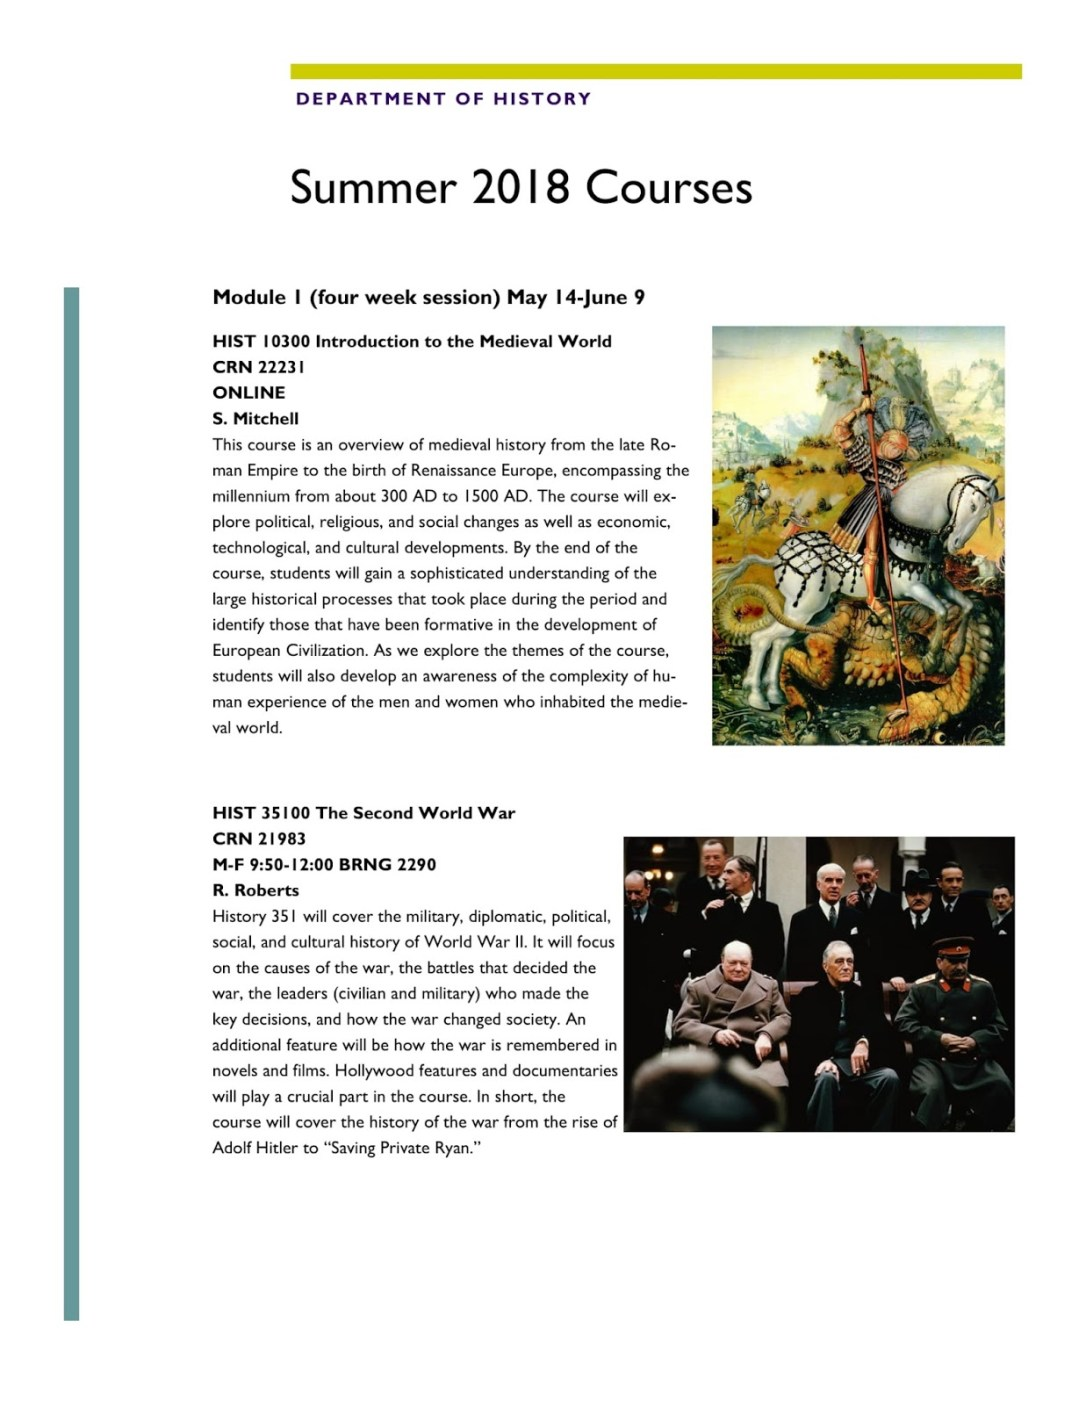 Summer 2018 History courses-1